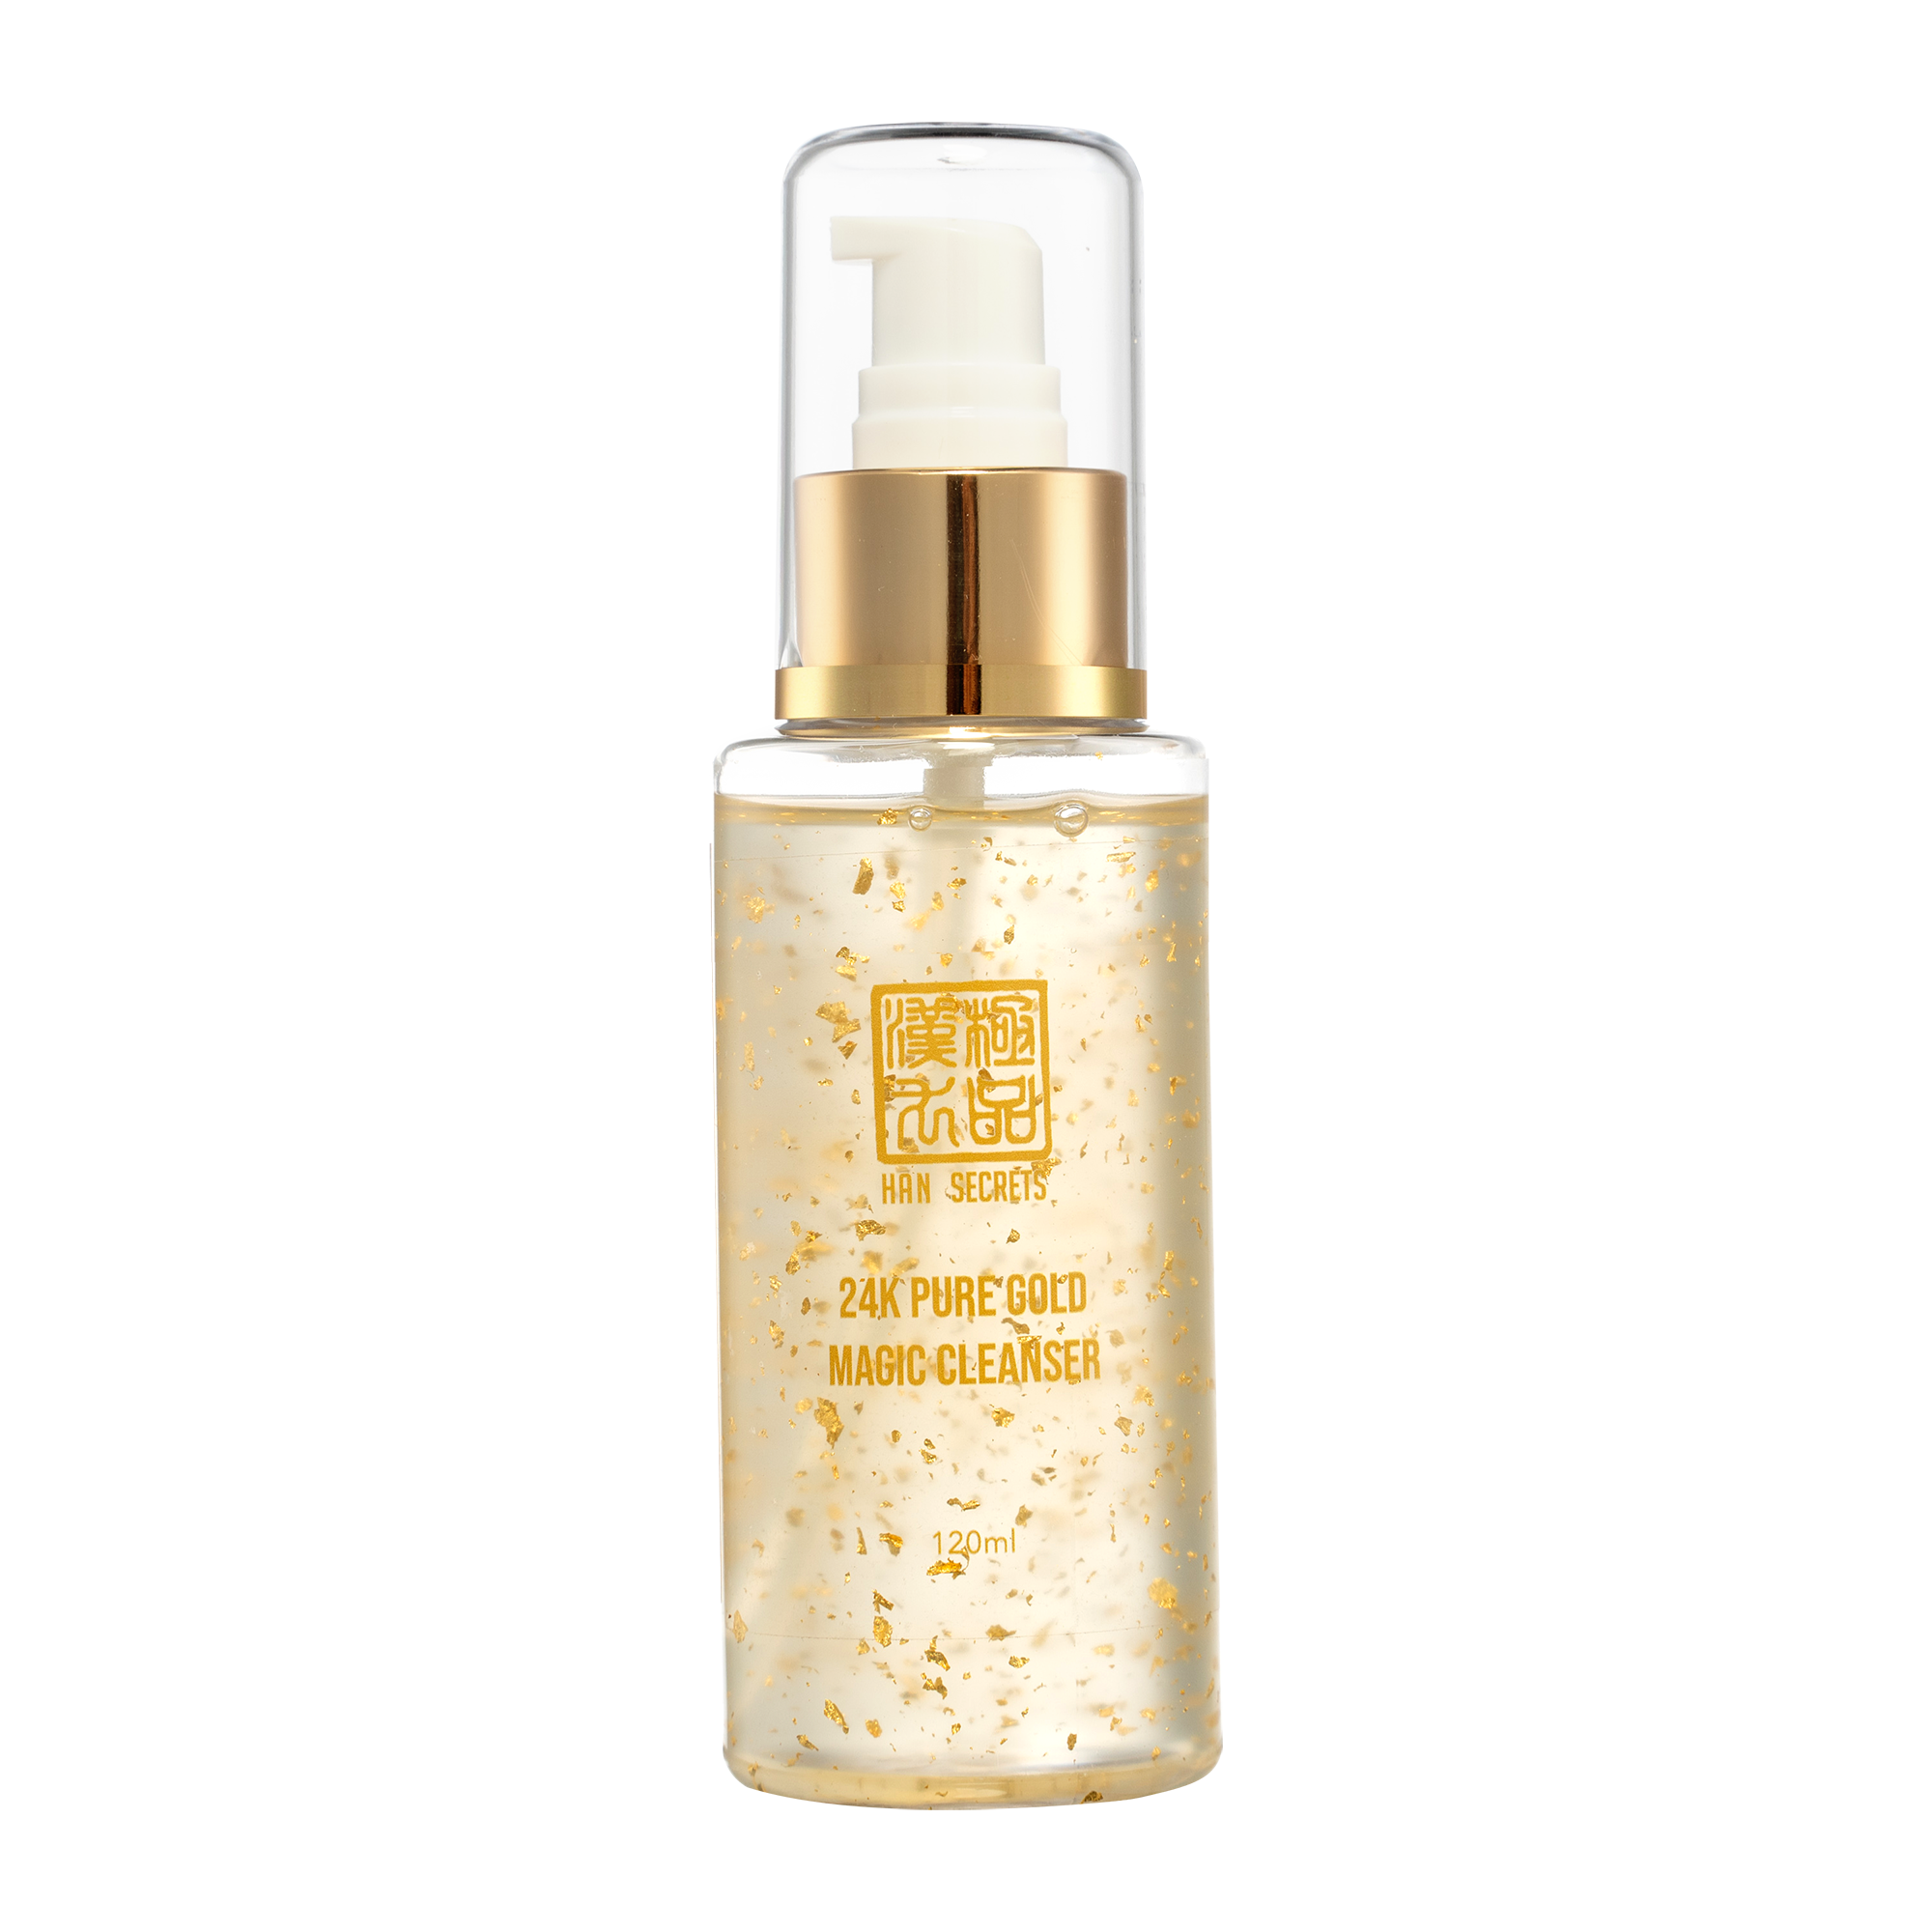 24K Pure Gold Magic Cleanser, 24K黃金全效洗臉液.png